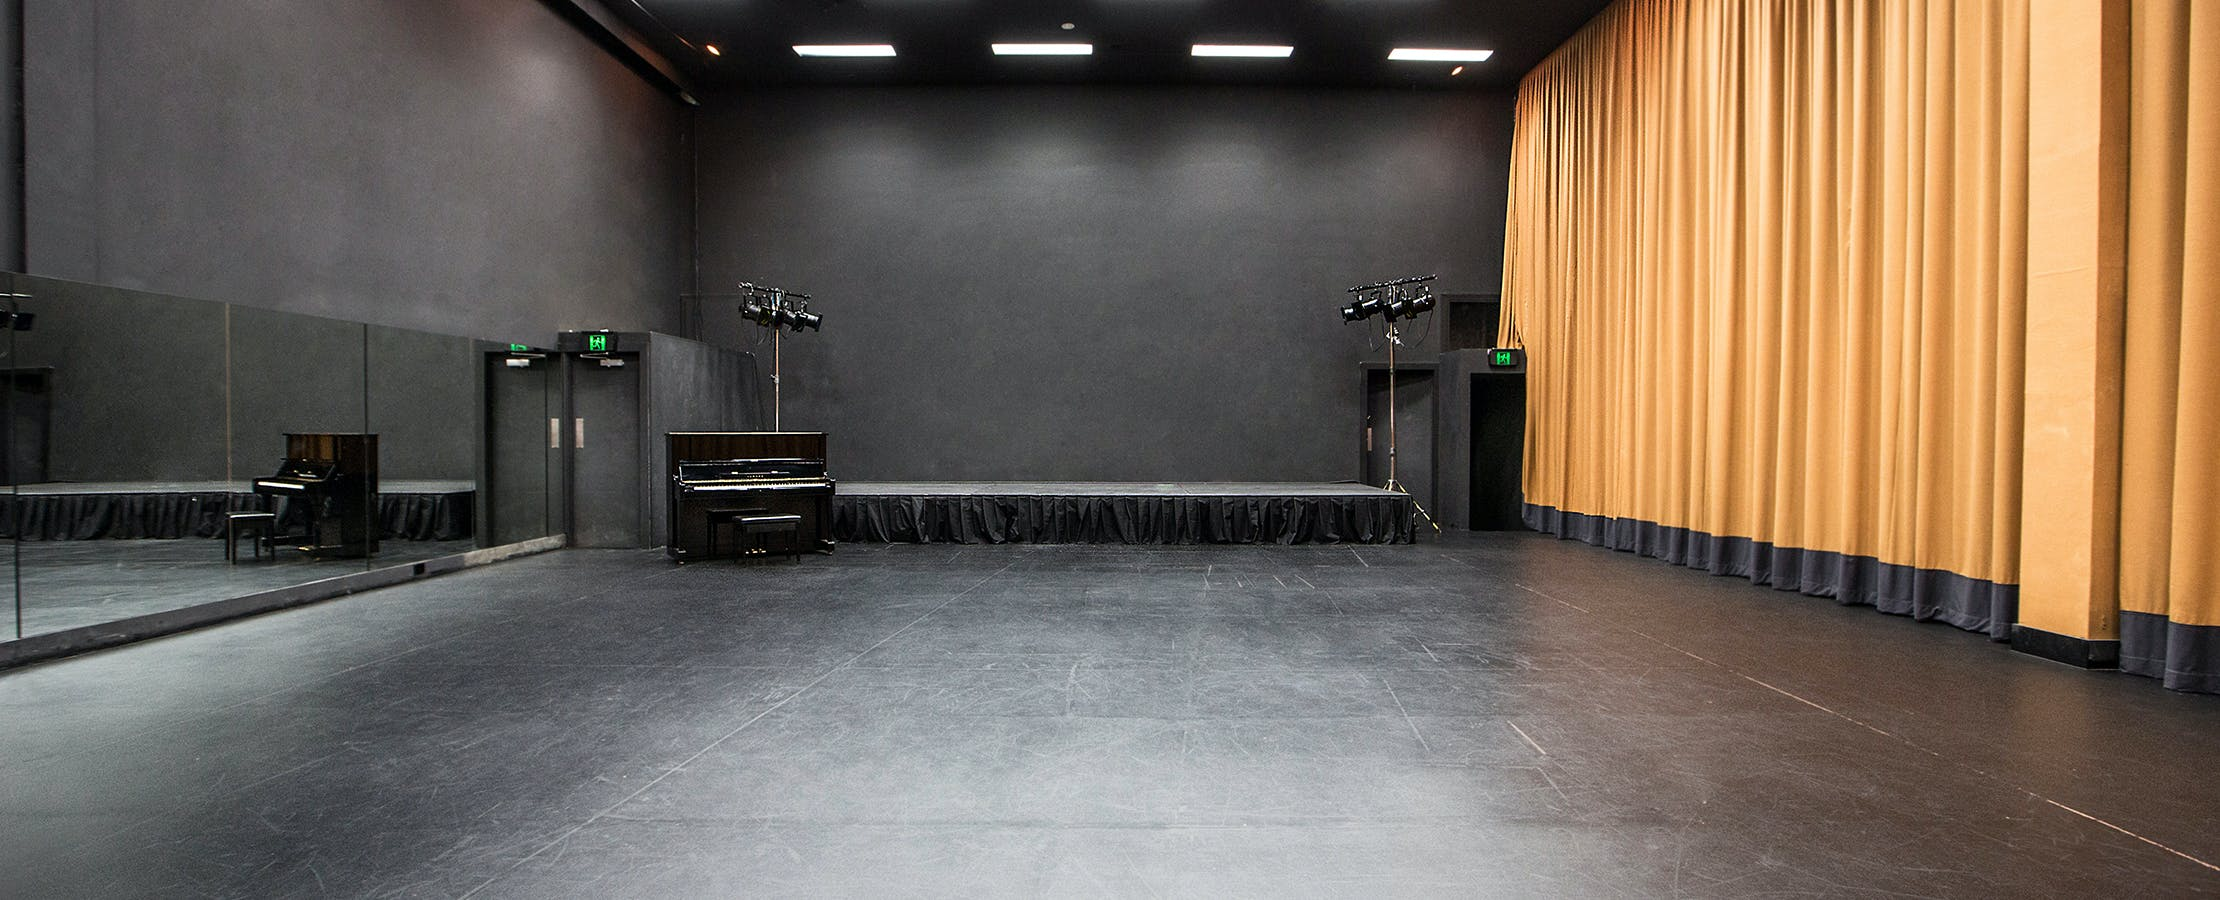 Studio, multi-use area at Alex Theatre St Kilda, image 1